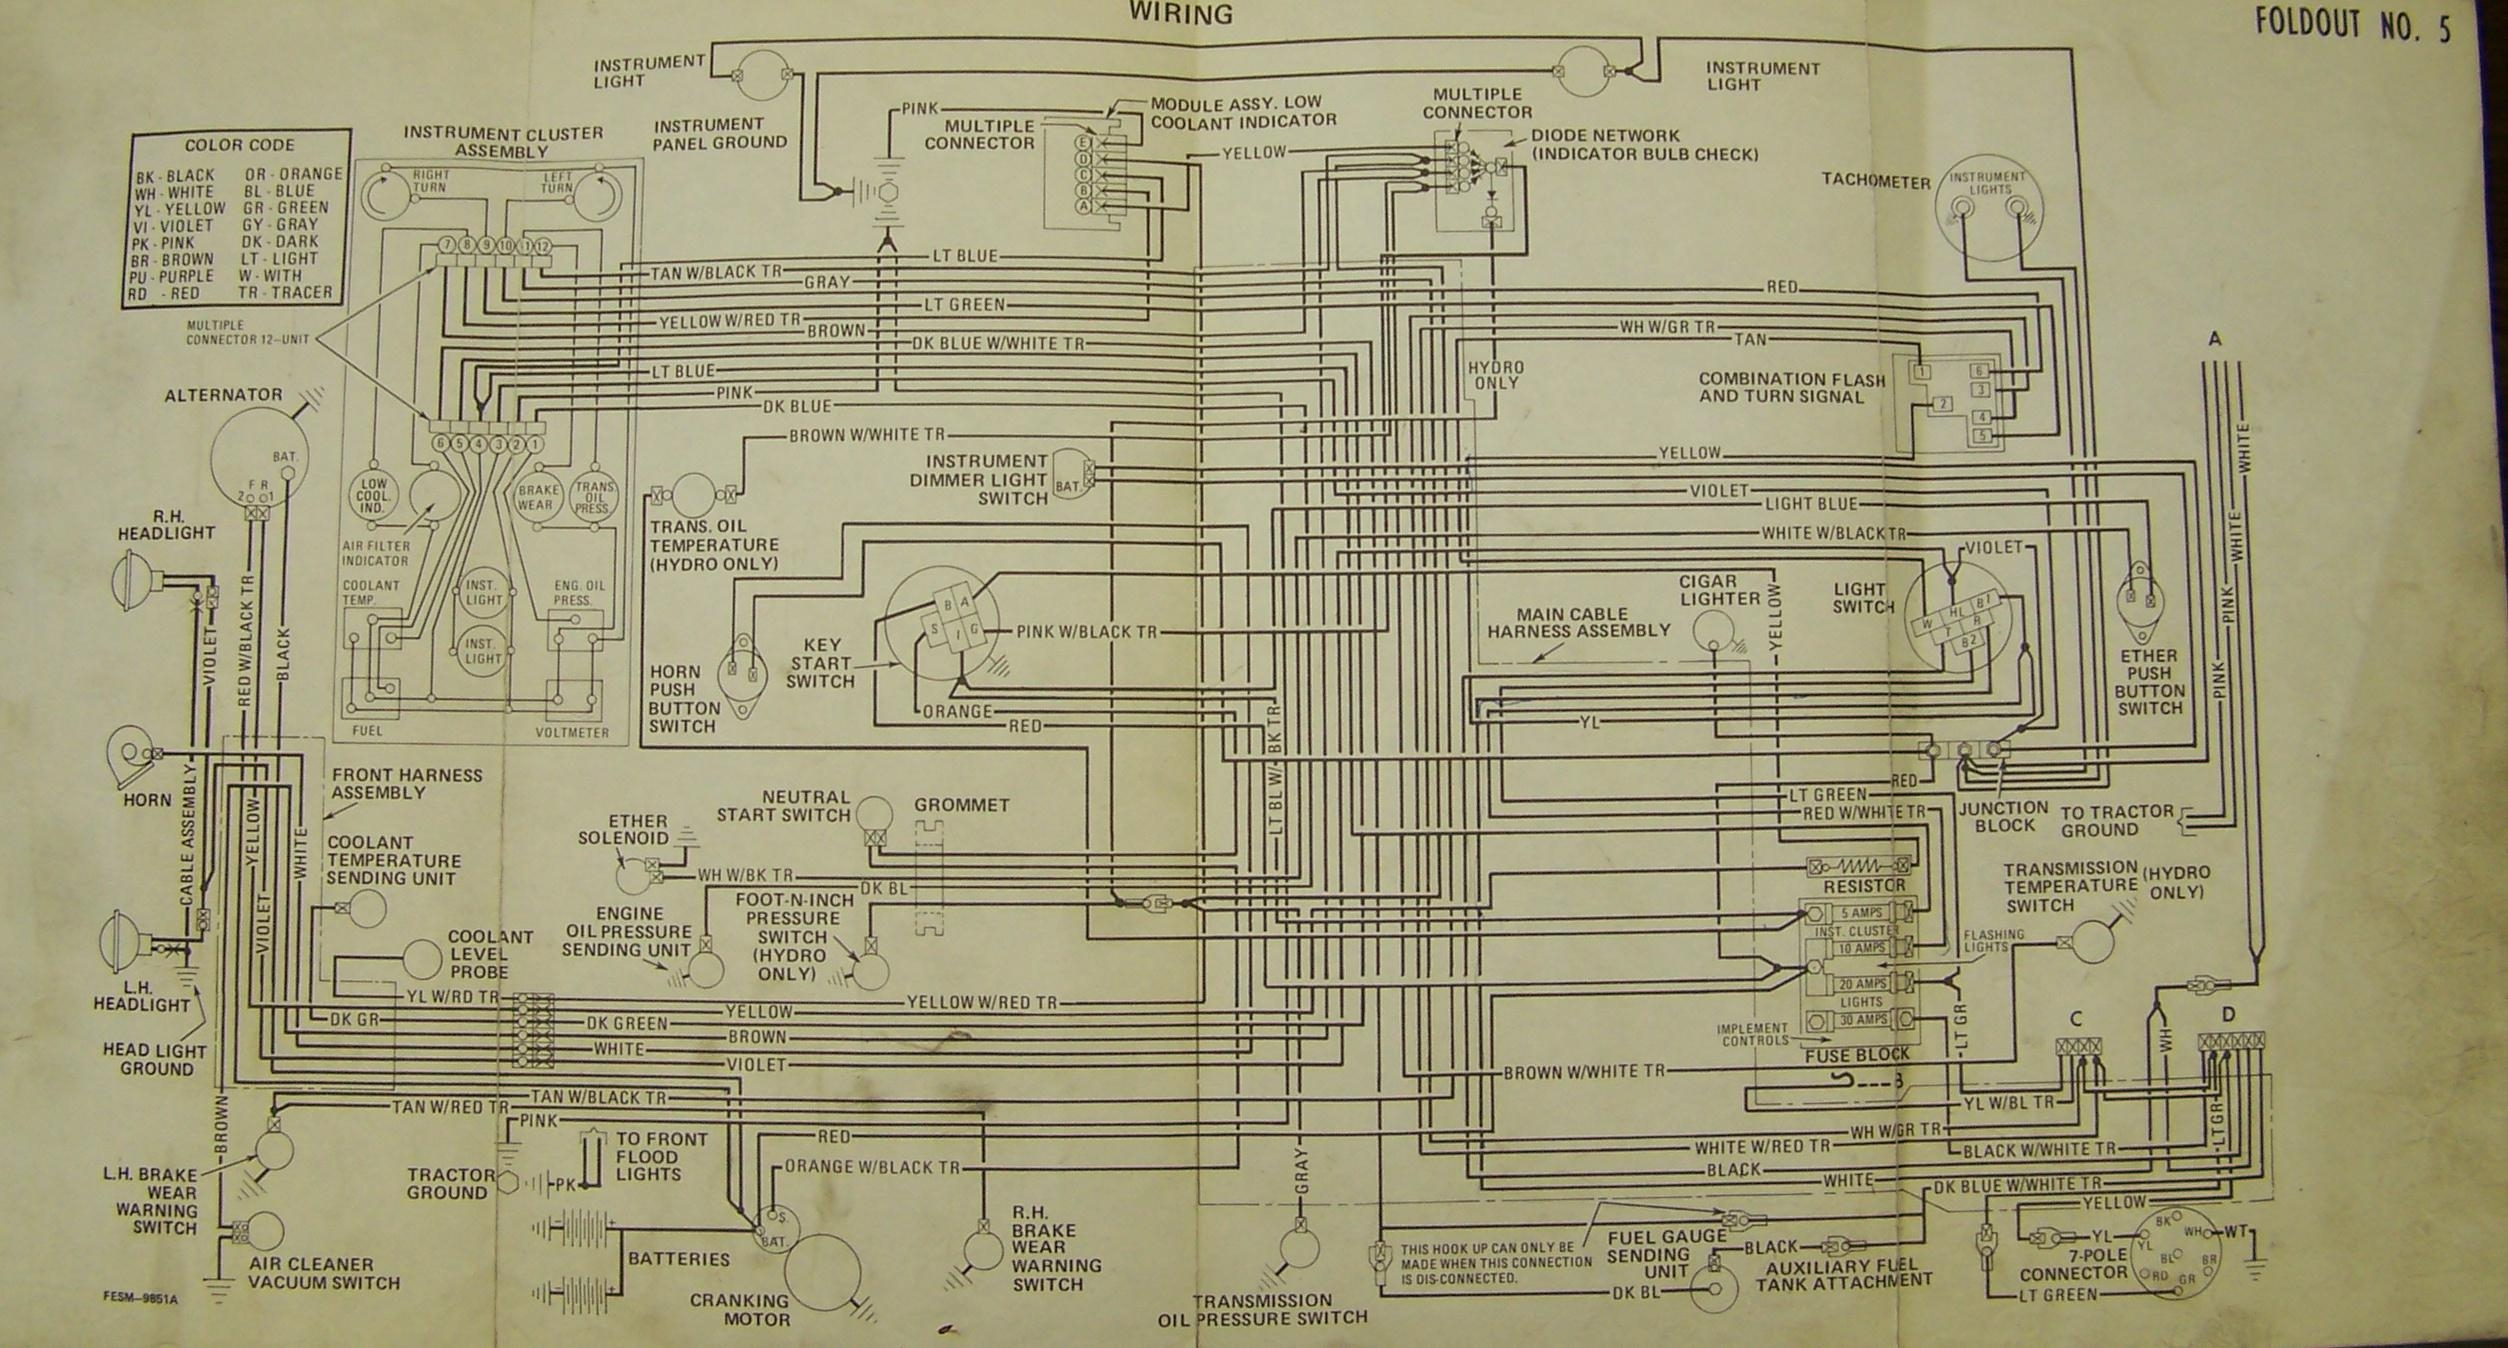 Wiring Diagram International Dt466 Wiring Diagram International Wiring